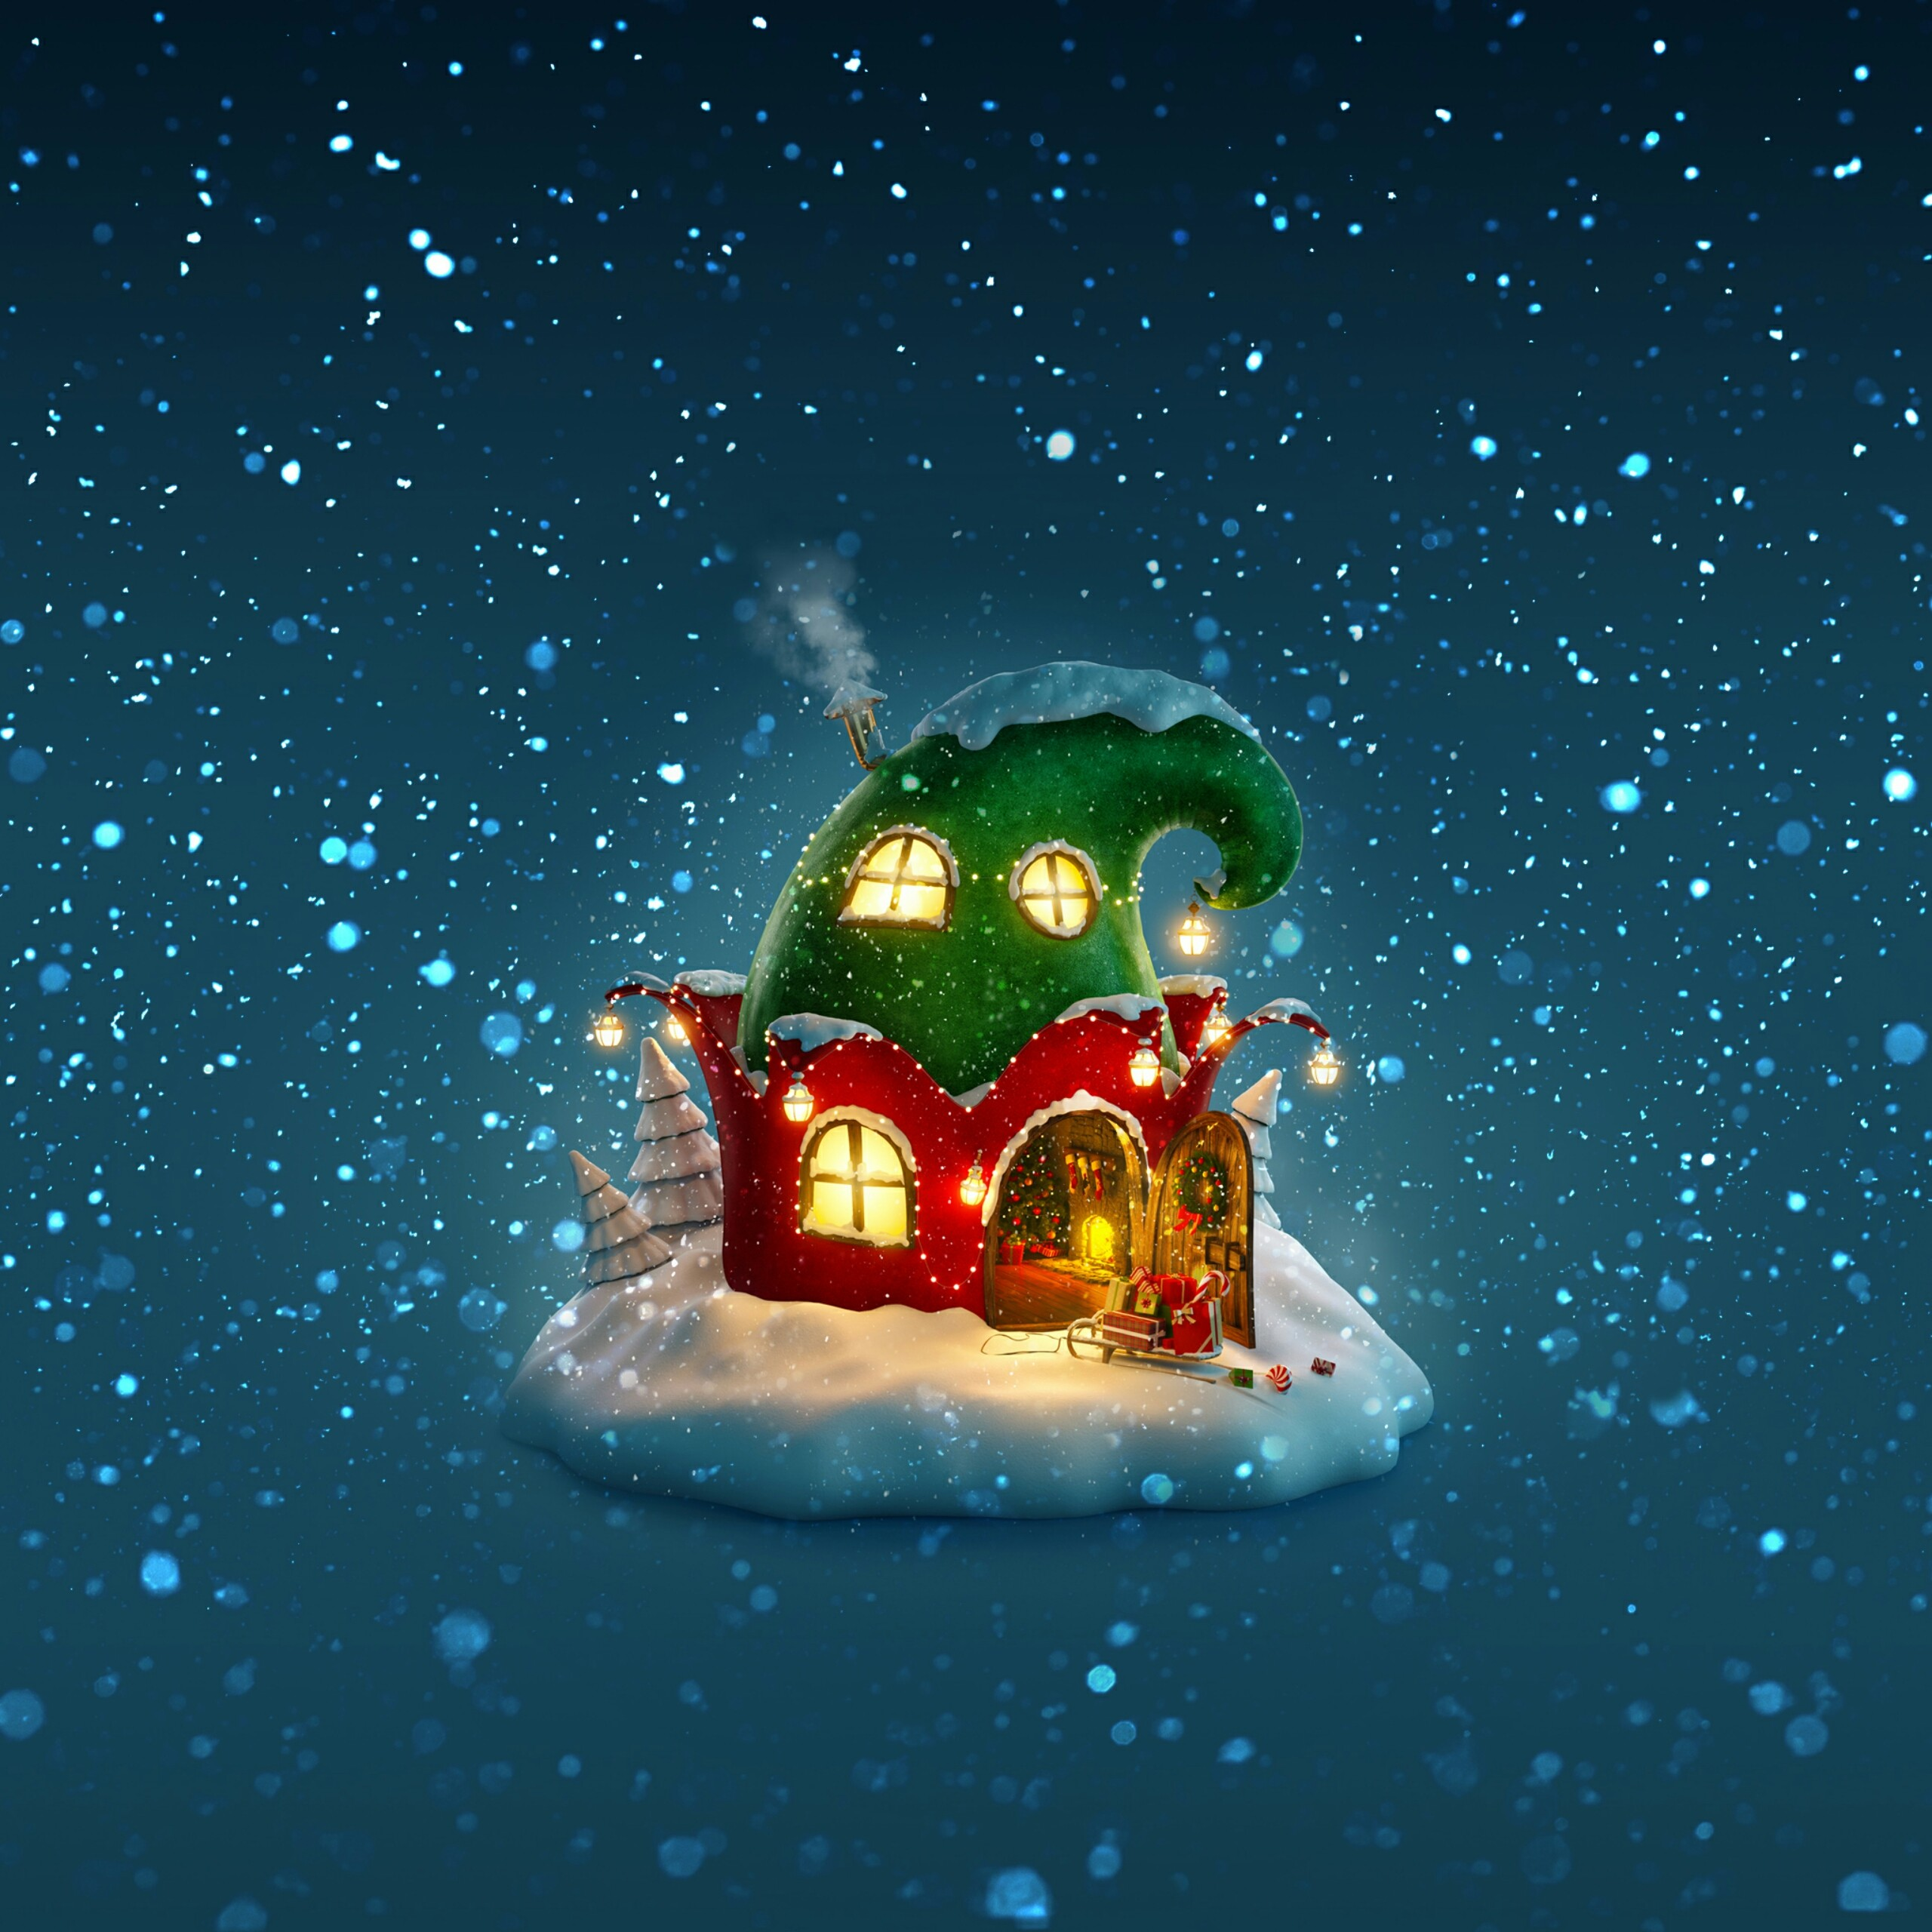 santa clause home on a snowy night events qhd wallpaper 2560x2560